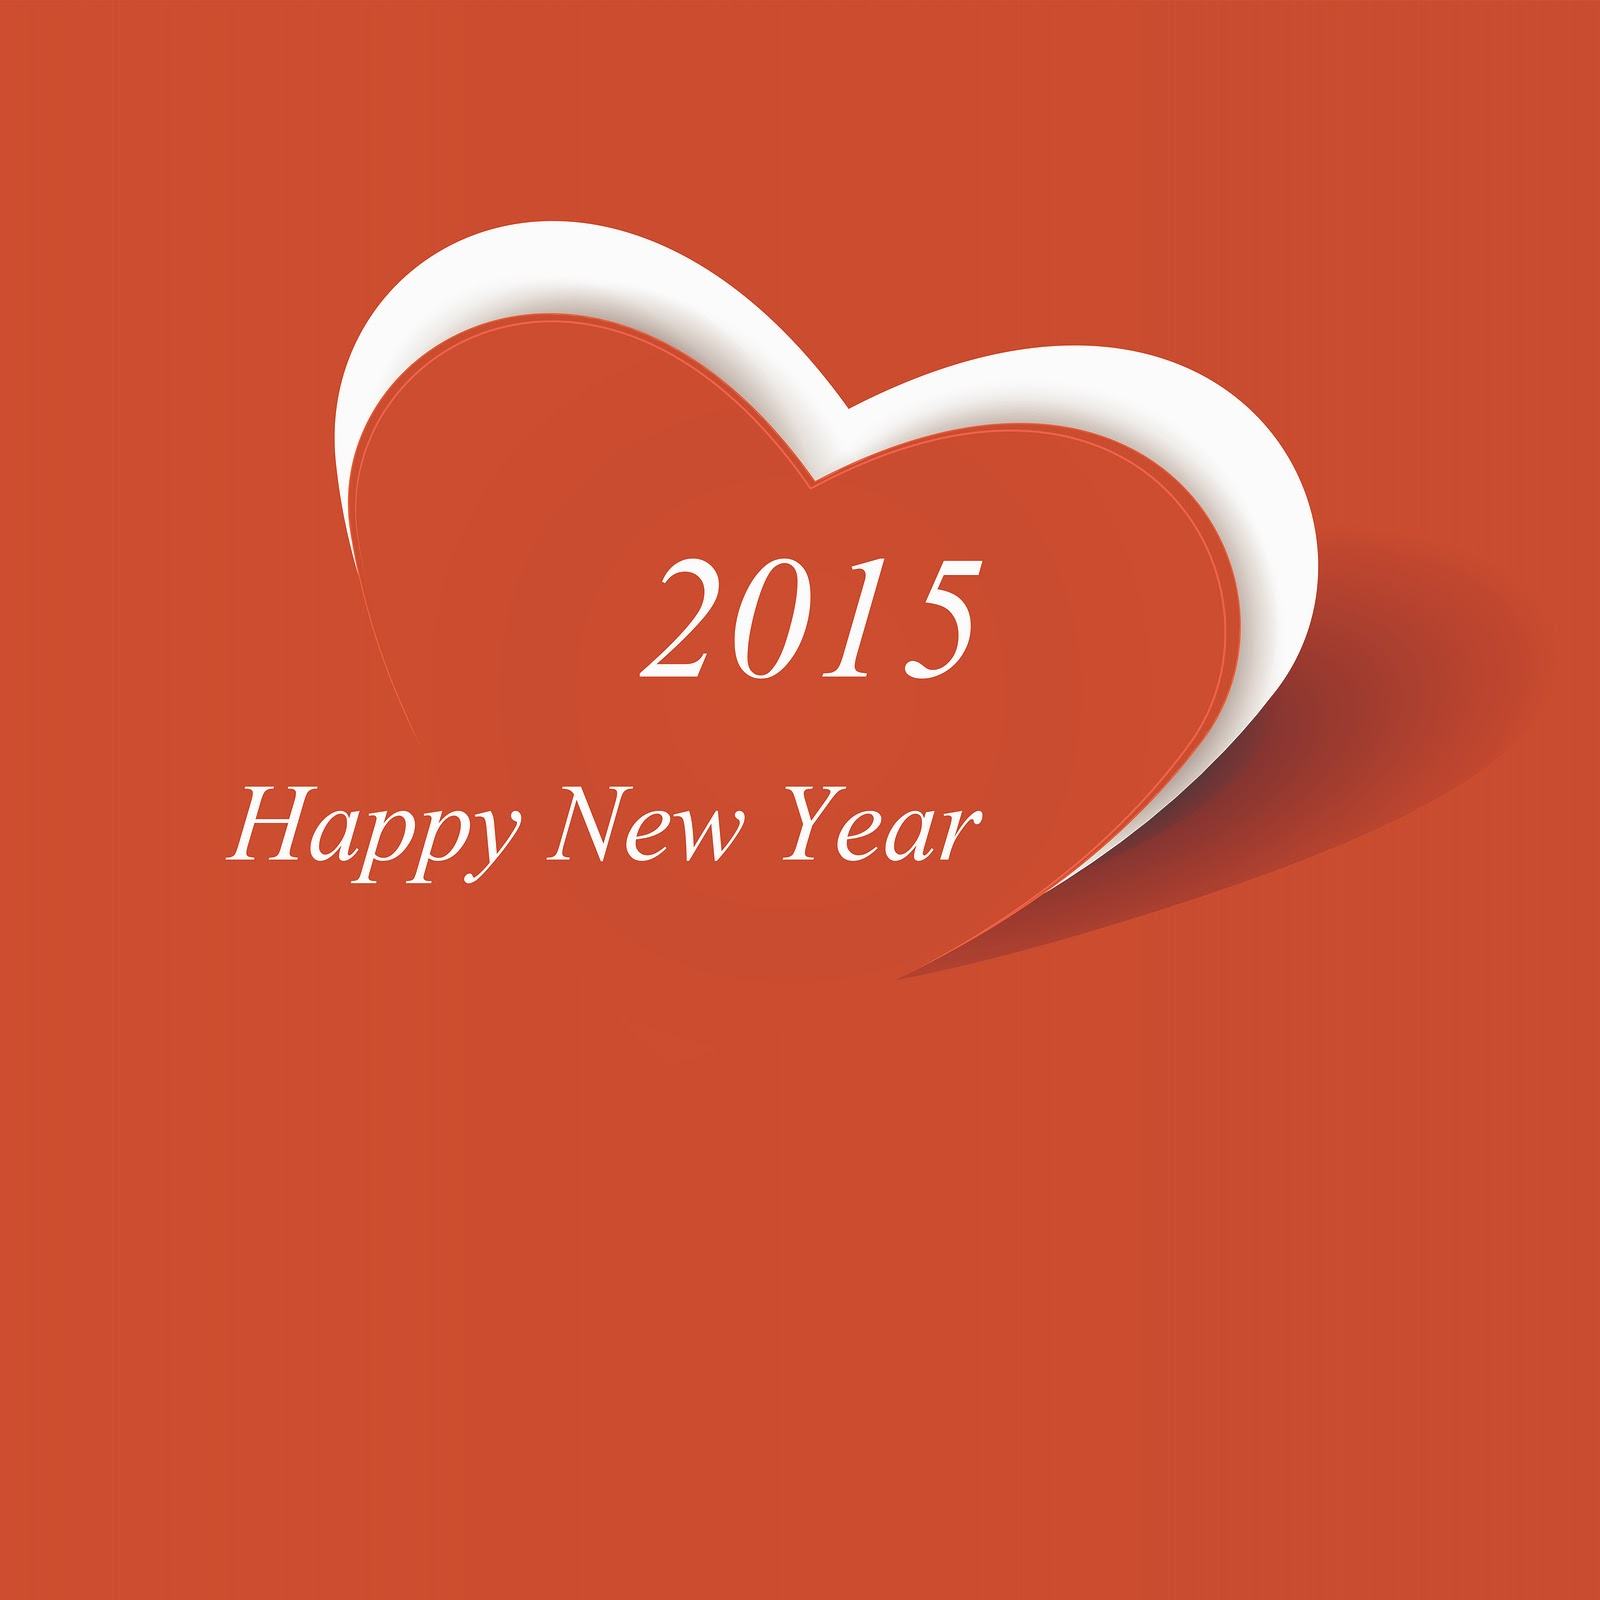 happy new year 2015 hd wallpapers spicytec